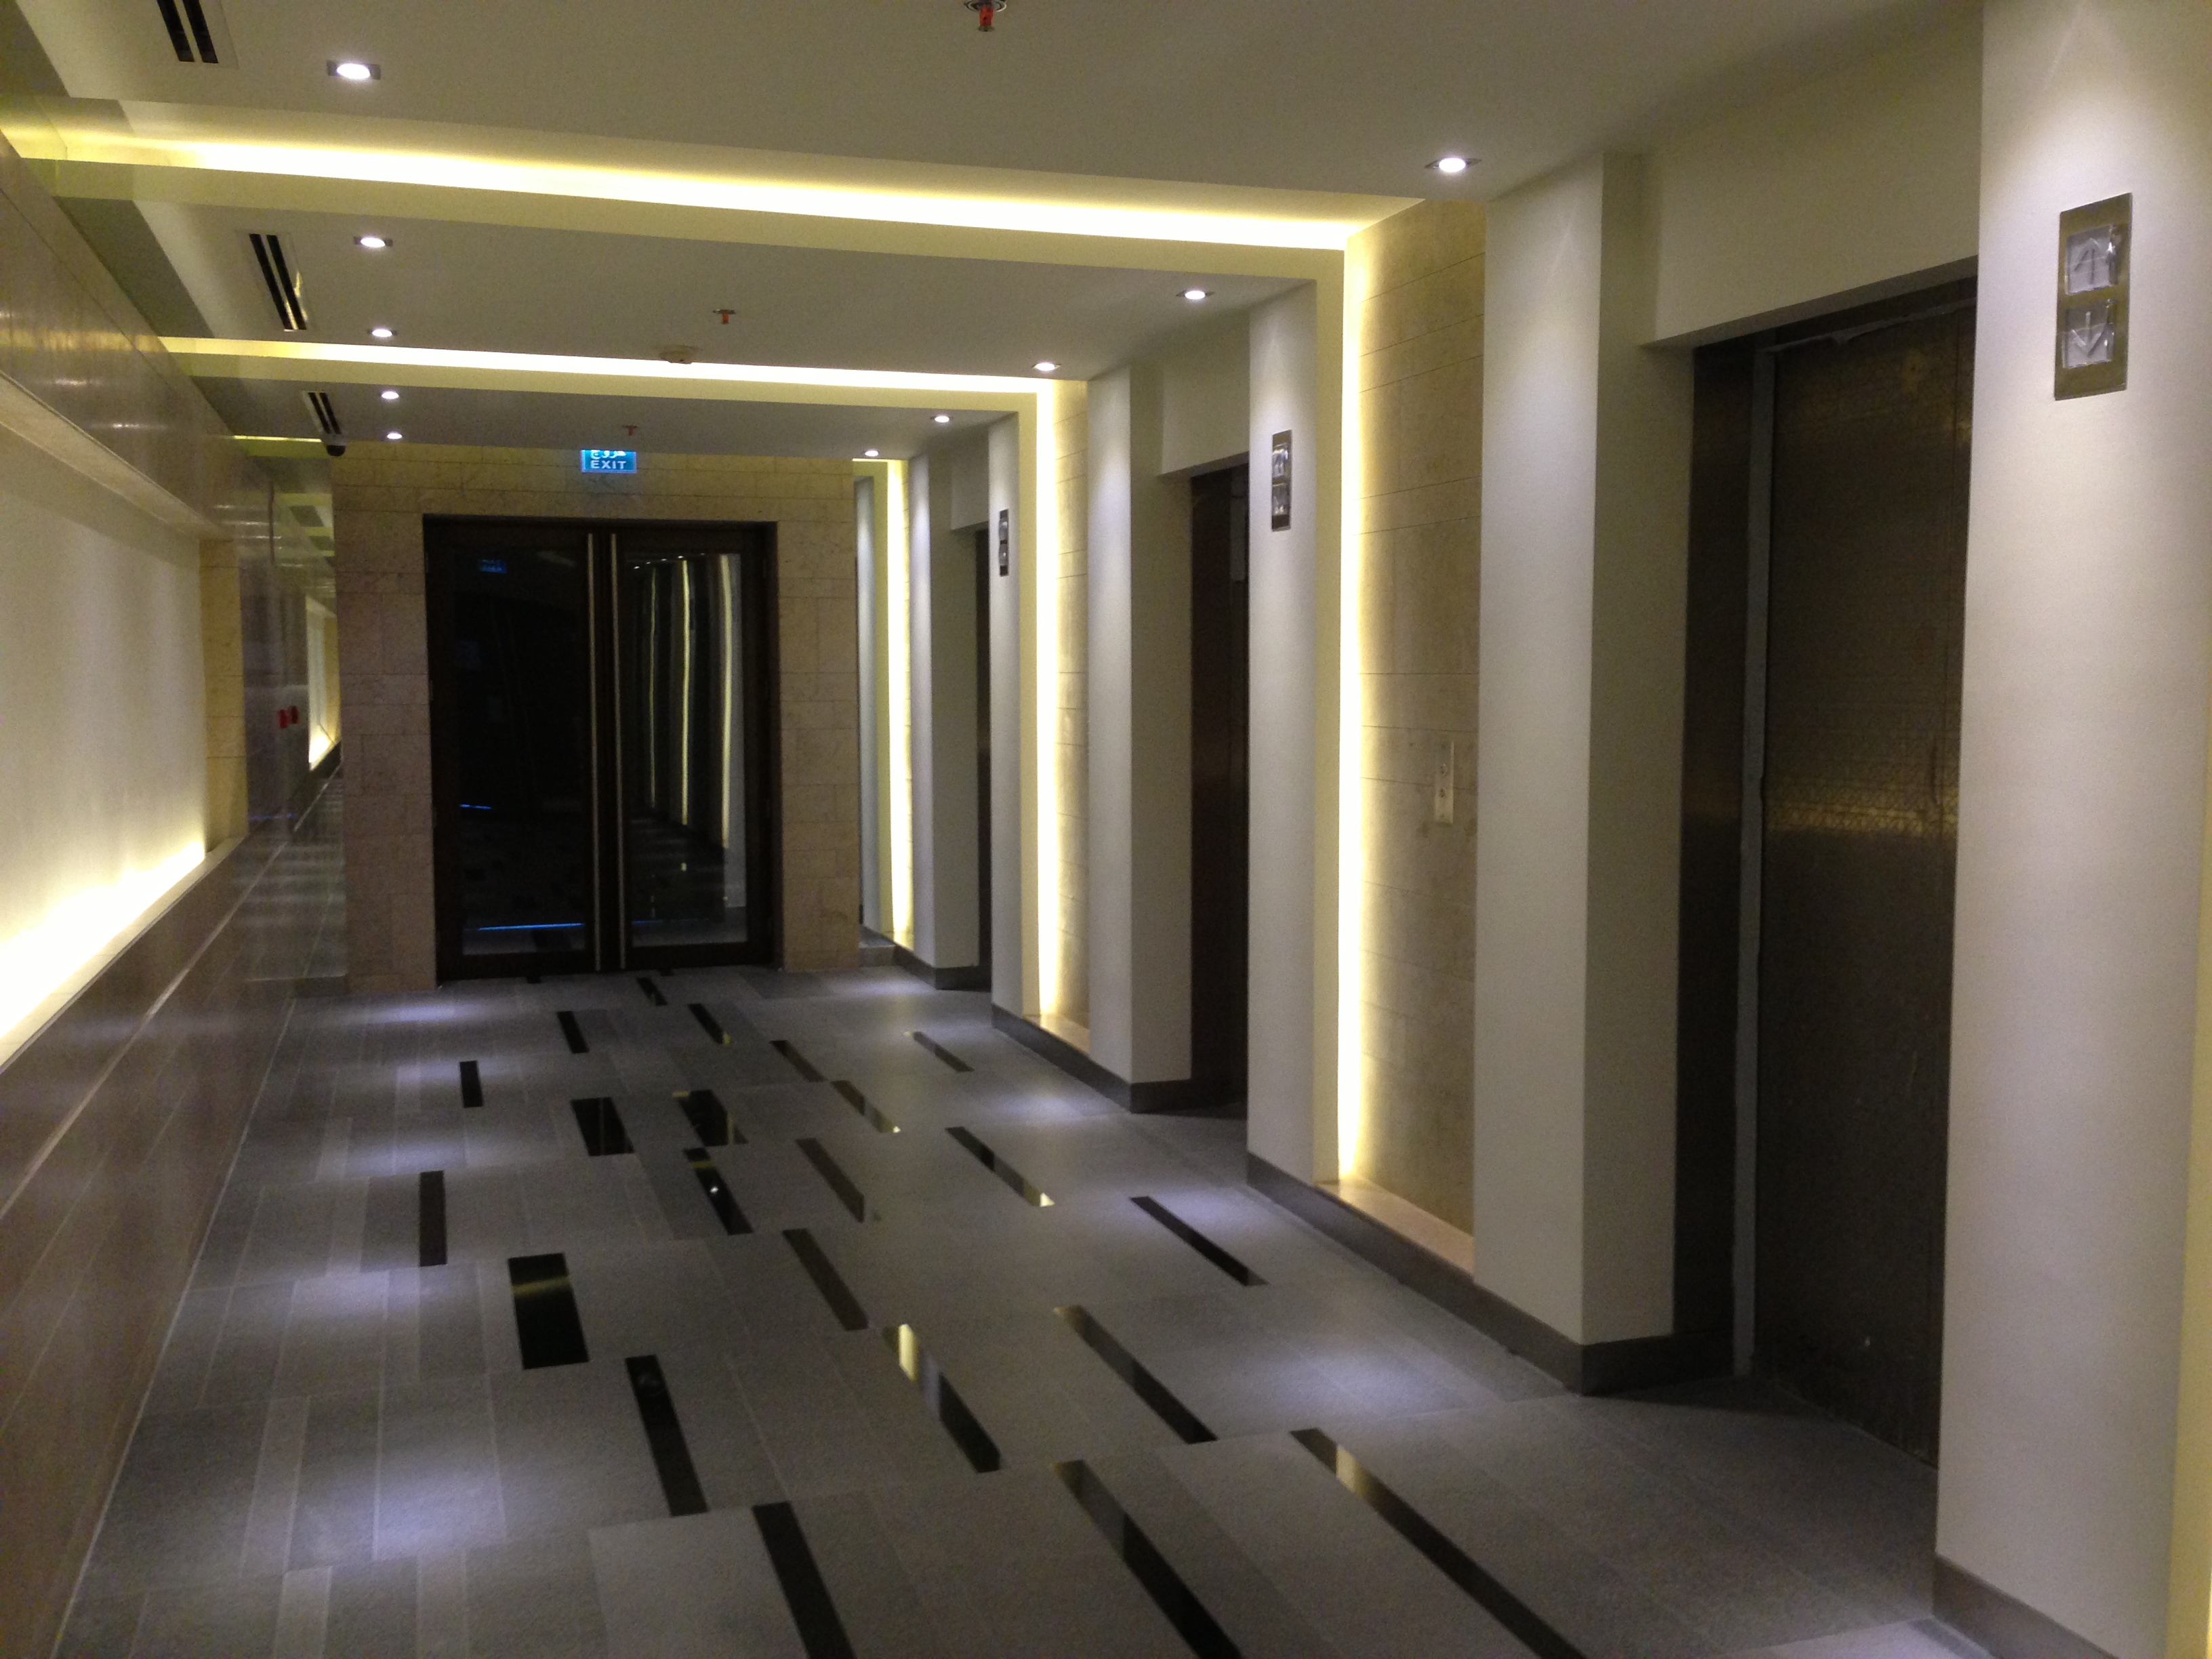 FileFakhro Tower Typical Lift Lobby Feb 2013jpg Wikimedia Commons